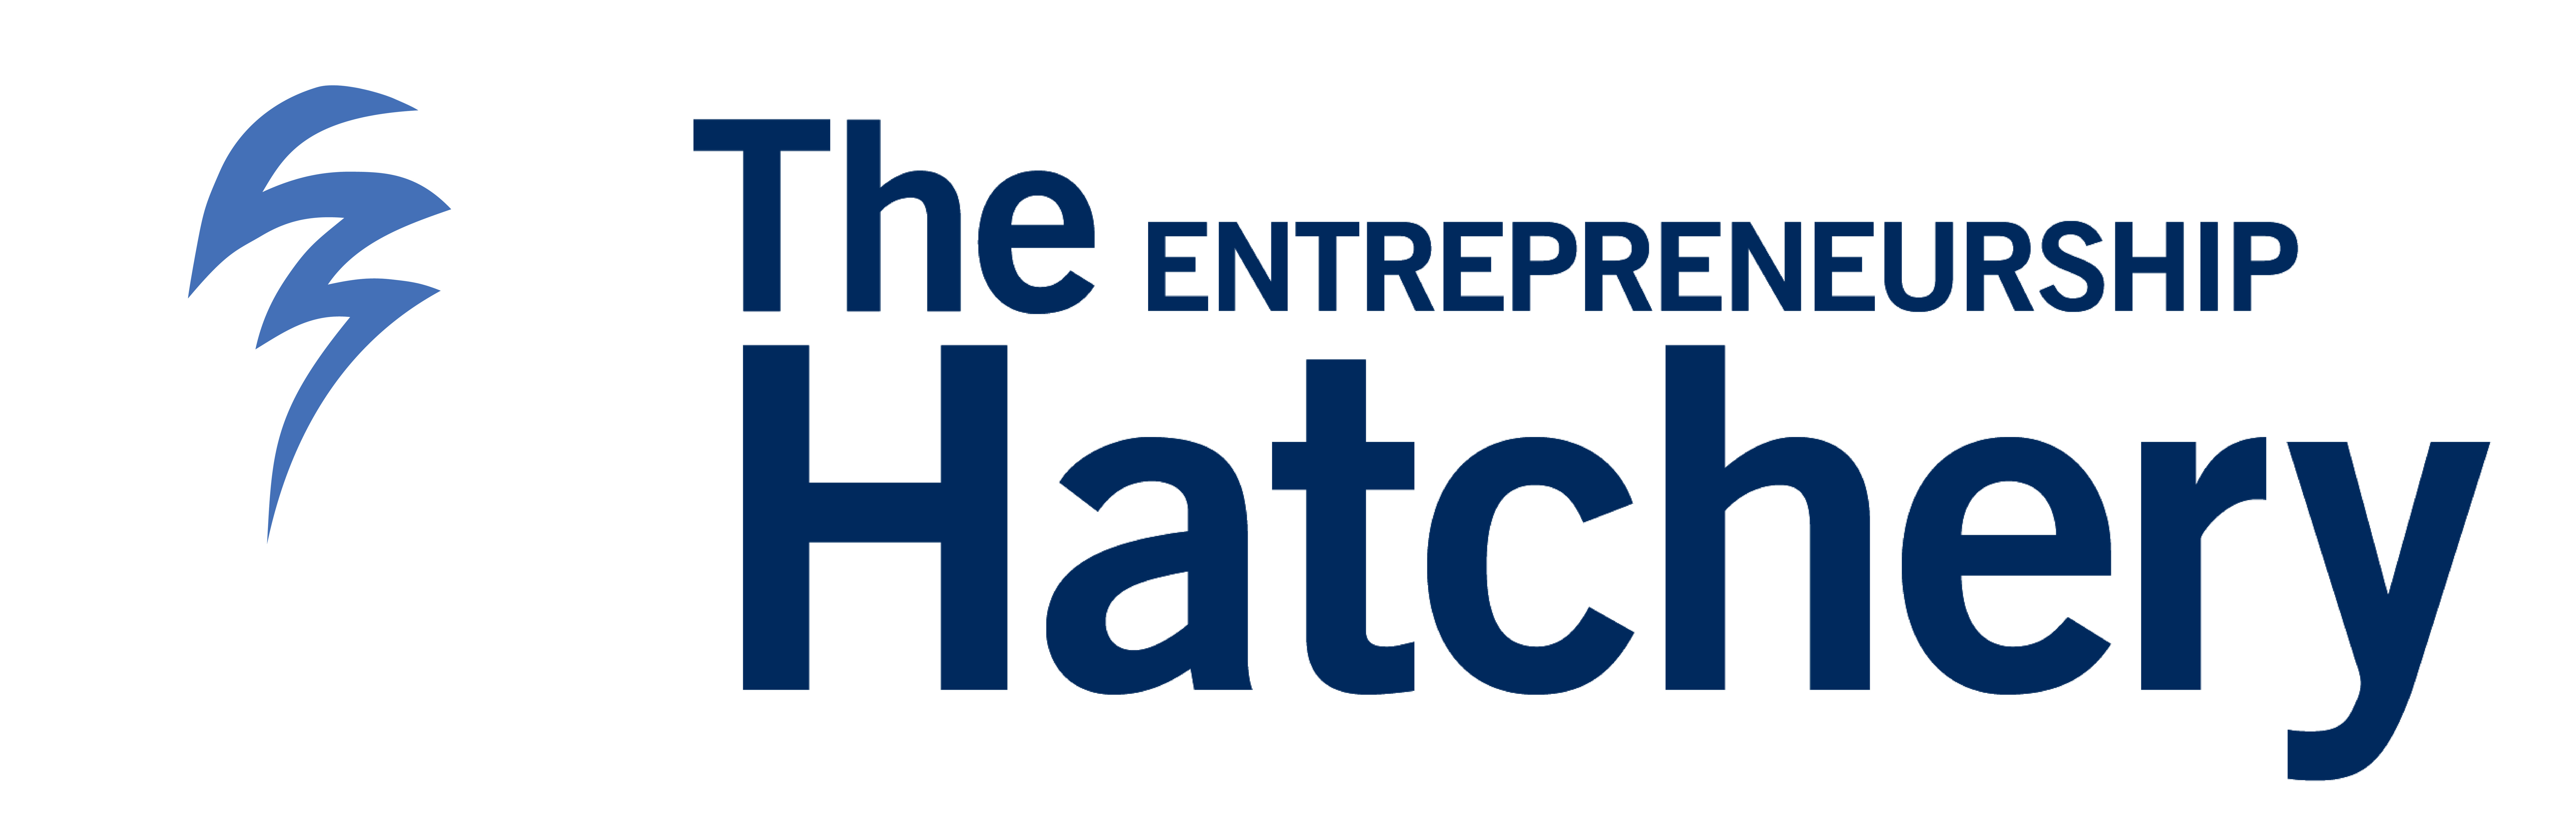 The Entrepreneurship Hatchery